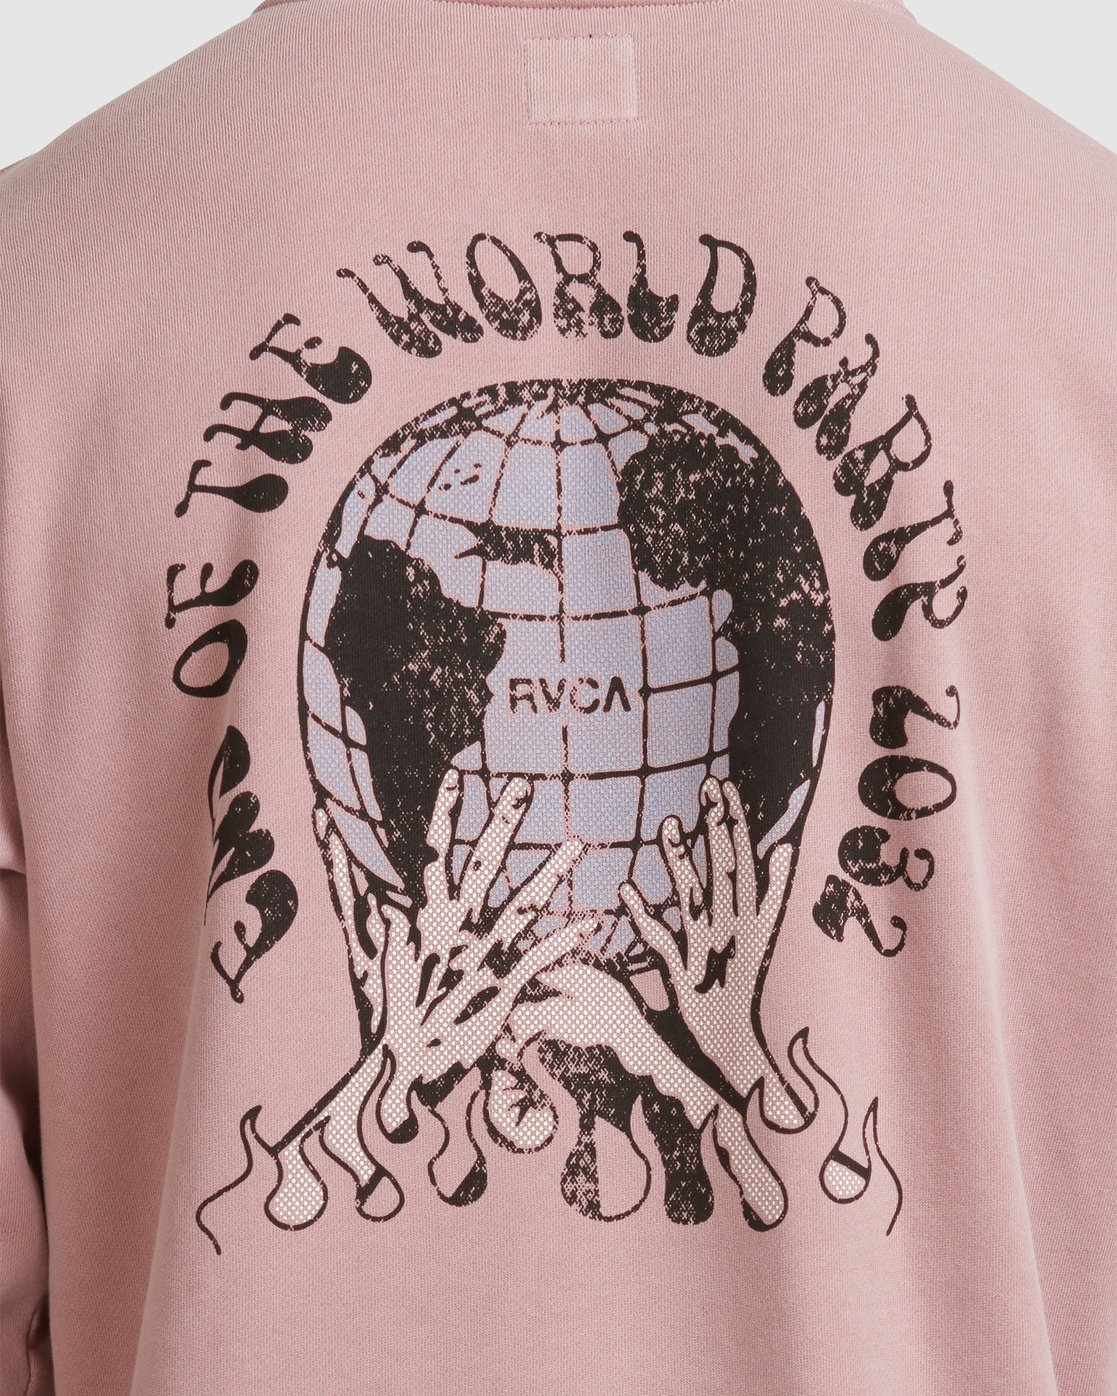 2 WORLD PARTY HOODIE Purple R117153 RVCA